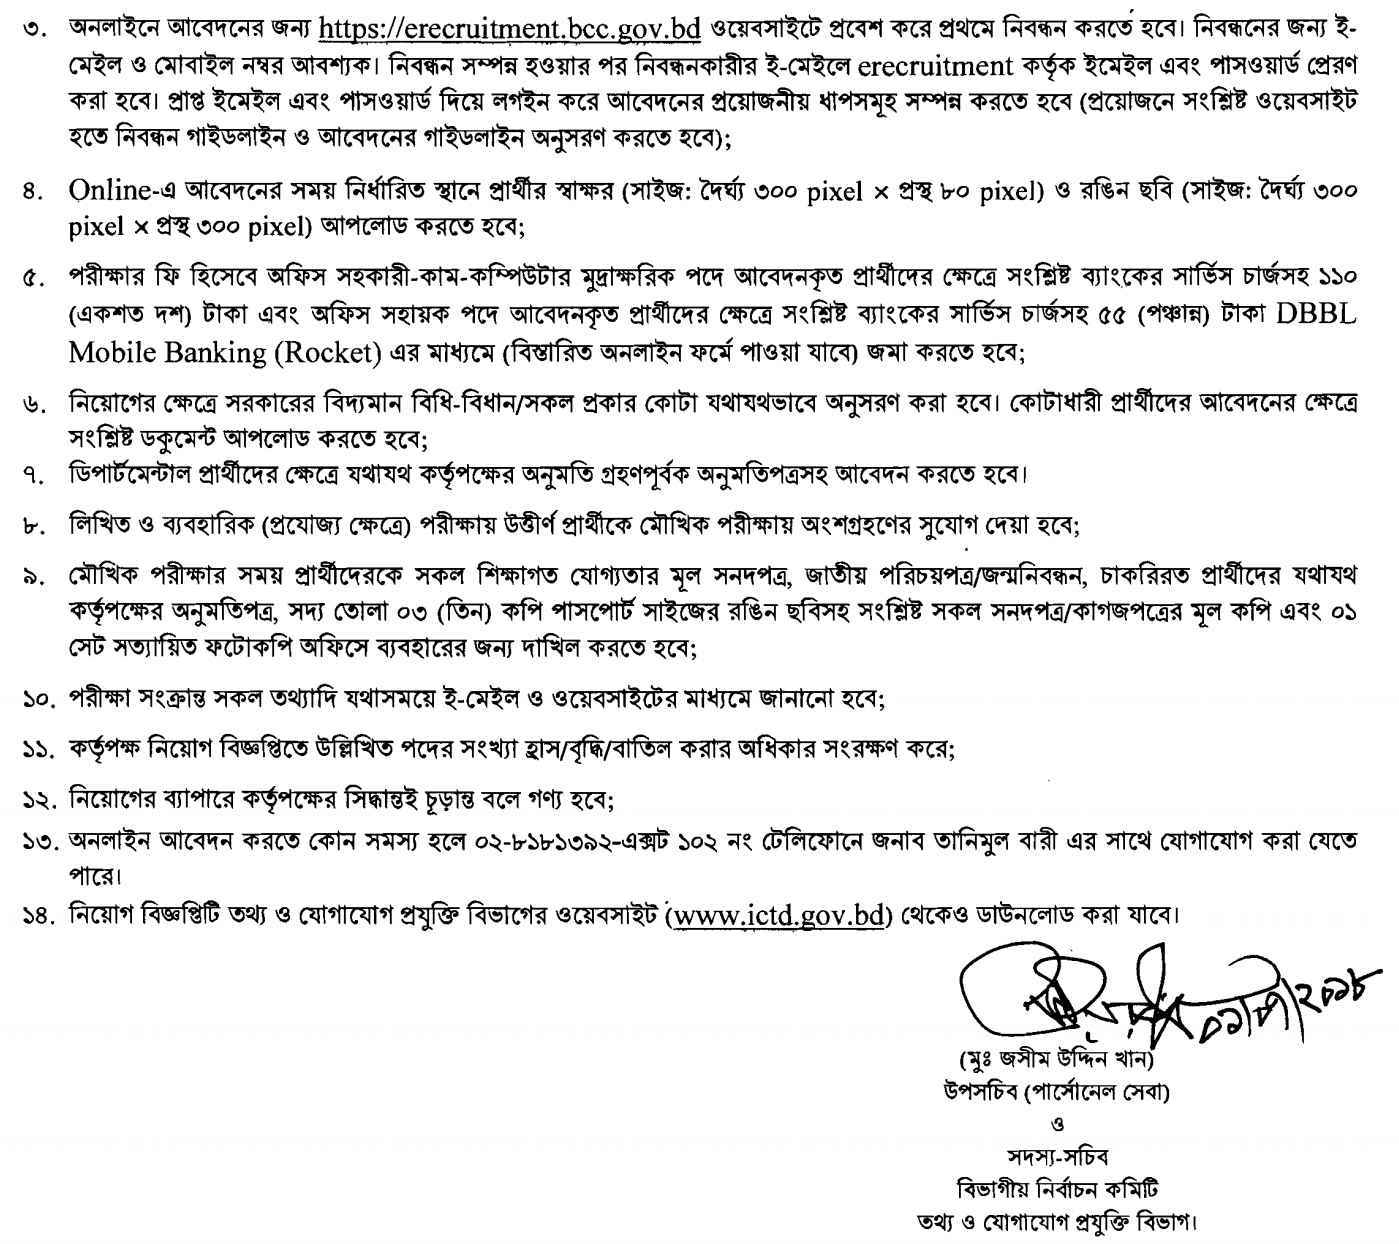 department-of-information-and-communication-technology-ictd-job-circular-2